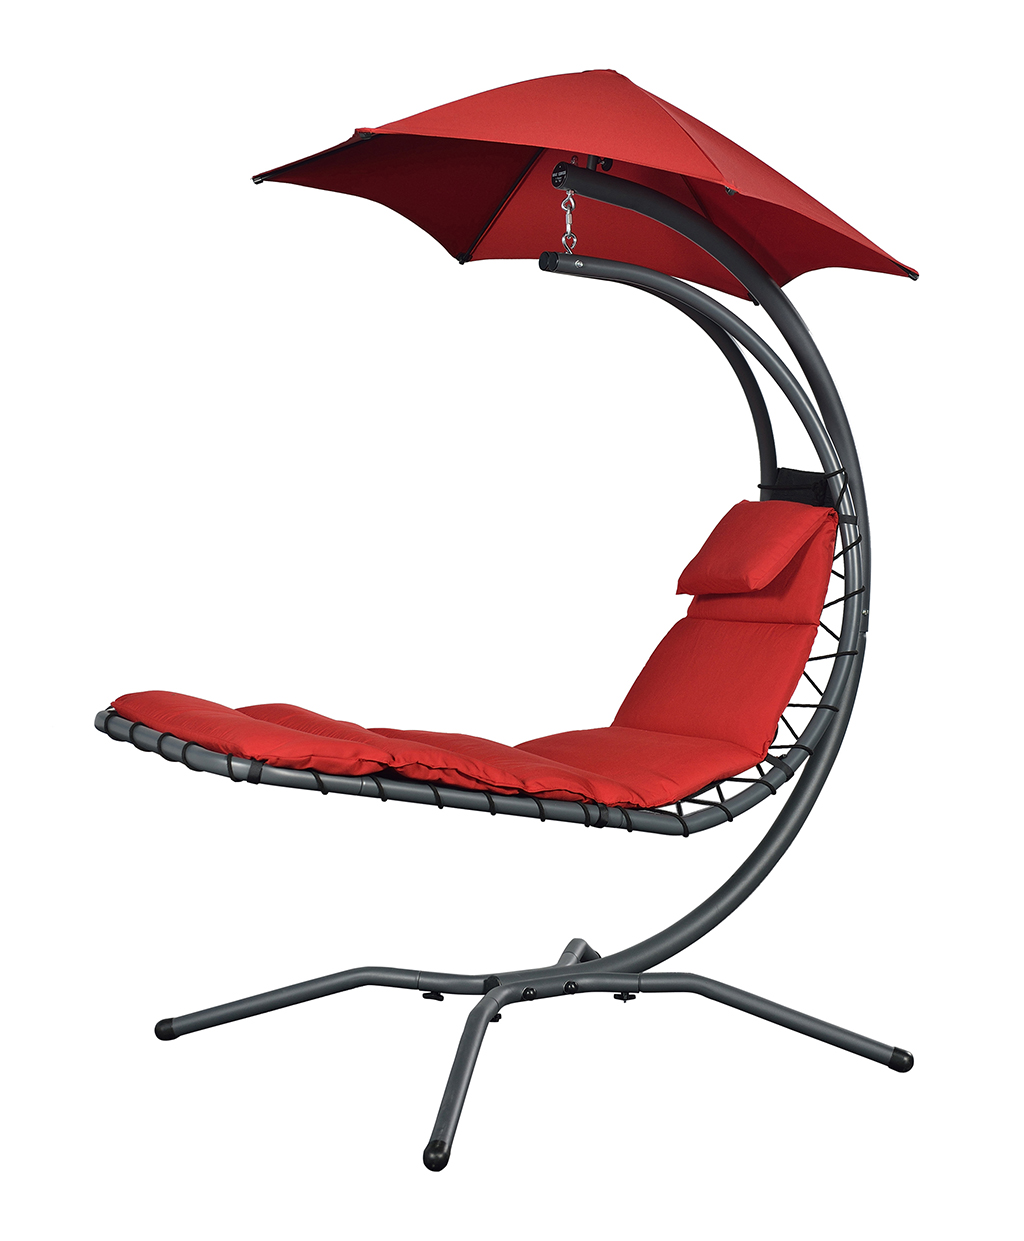 Chaise longue NEST MOVE rouge Reconditionné